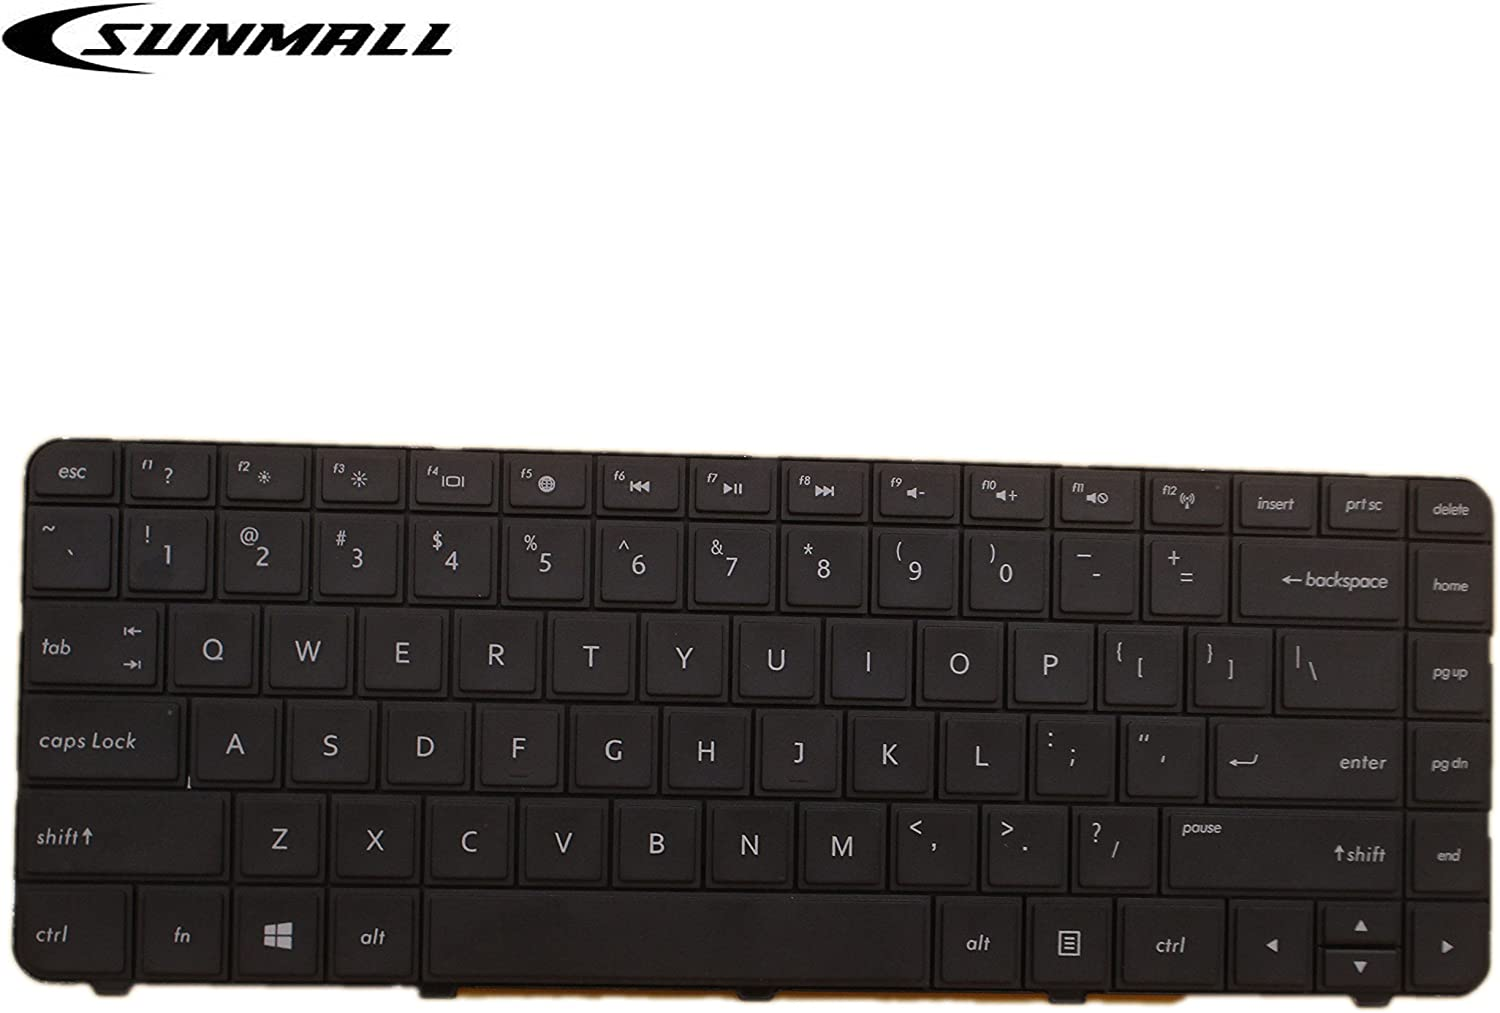 SUNMALL Laptop keyboard replacement for HP Pavilion CQ57 CQ58 G4-1000 G6-1000 2000 2000-100 2000-200 2000-300 2000-2b19wm 2000-2c29nr 2000-2b09wm 2000-2b20nr 2000-2d27dx 2000-2b19wm Series US Layout …